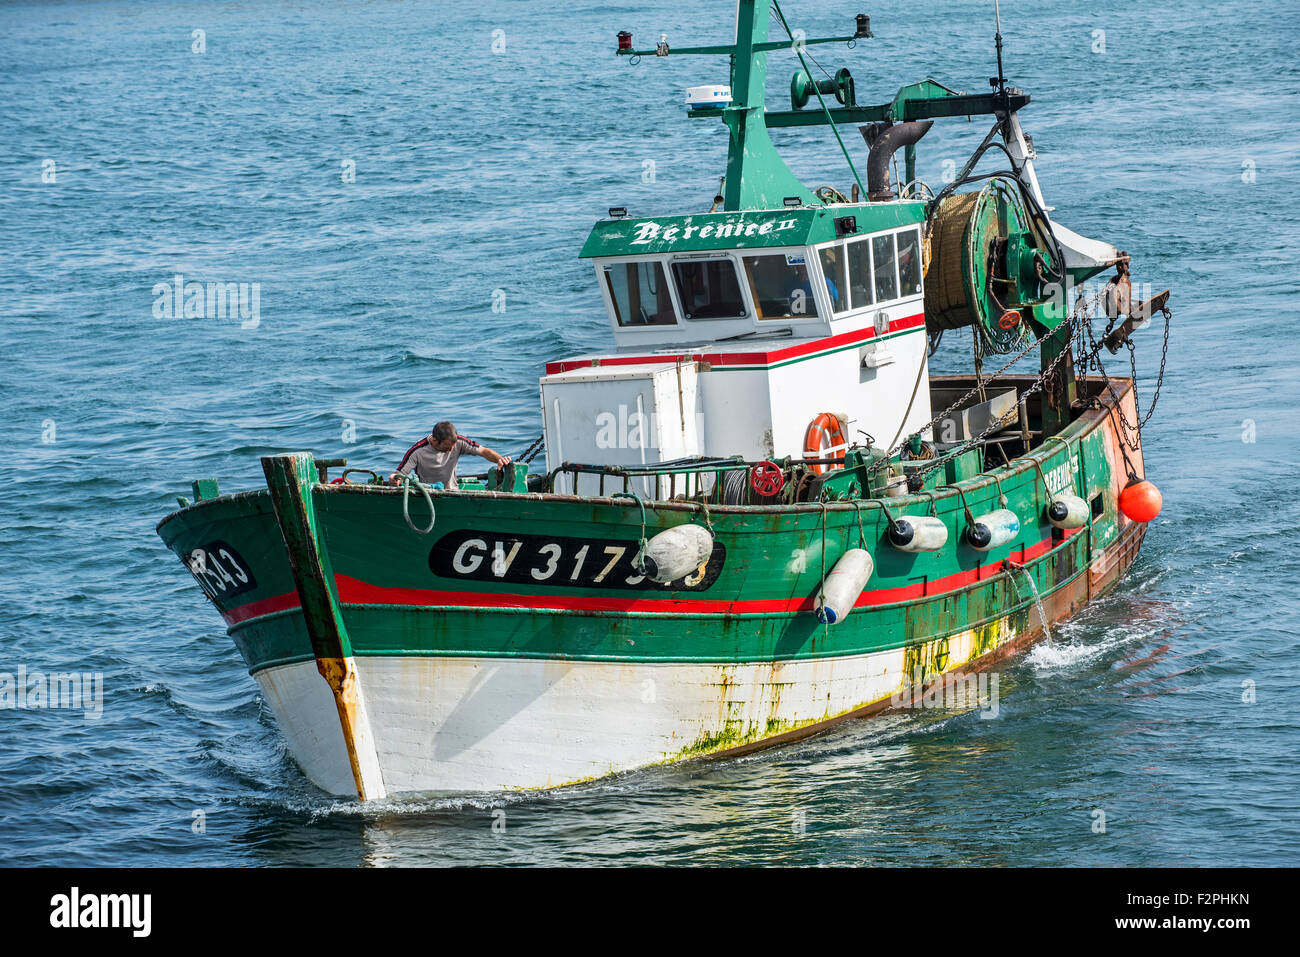 At Sea Fisherman On Board Of Green Wooden Trawler Fishing Boat At